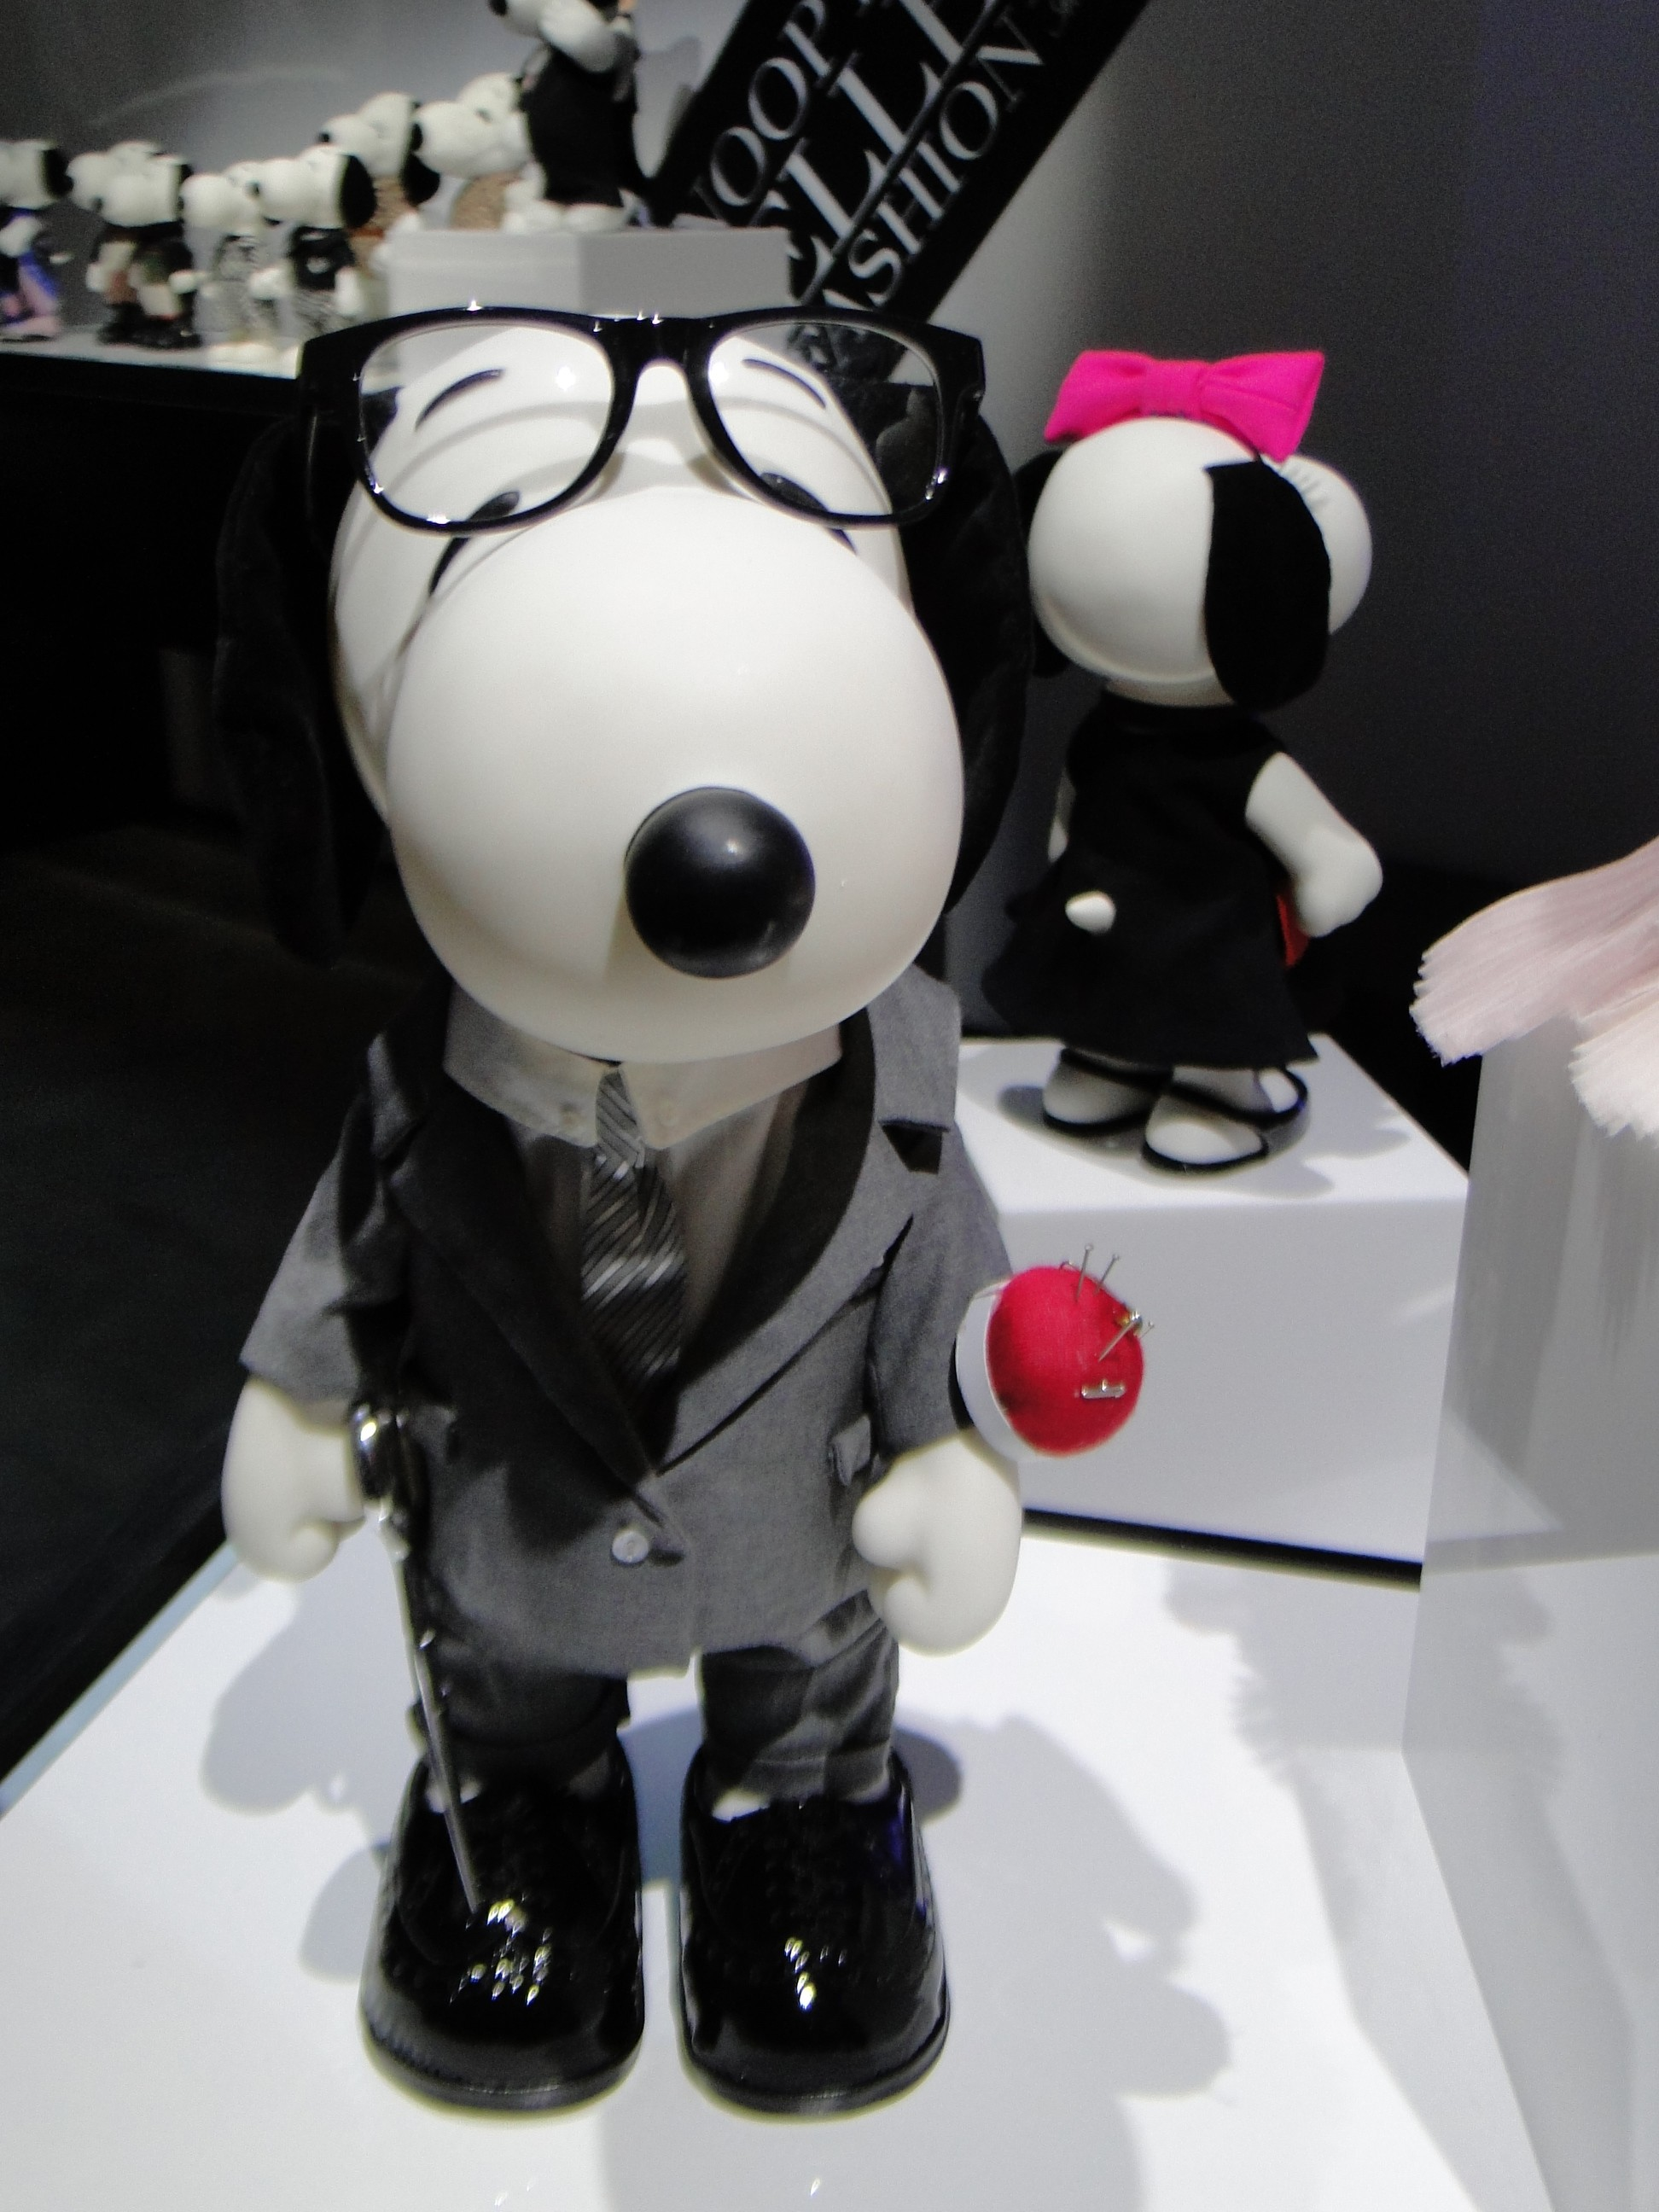 SNOOPY AND BELE IN FASHION Paris France Exhibition Exposition - Palais de Tokyo - copyright Go with the Blog DSC06430